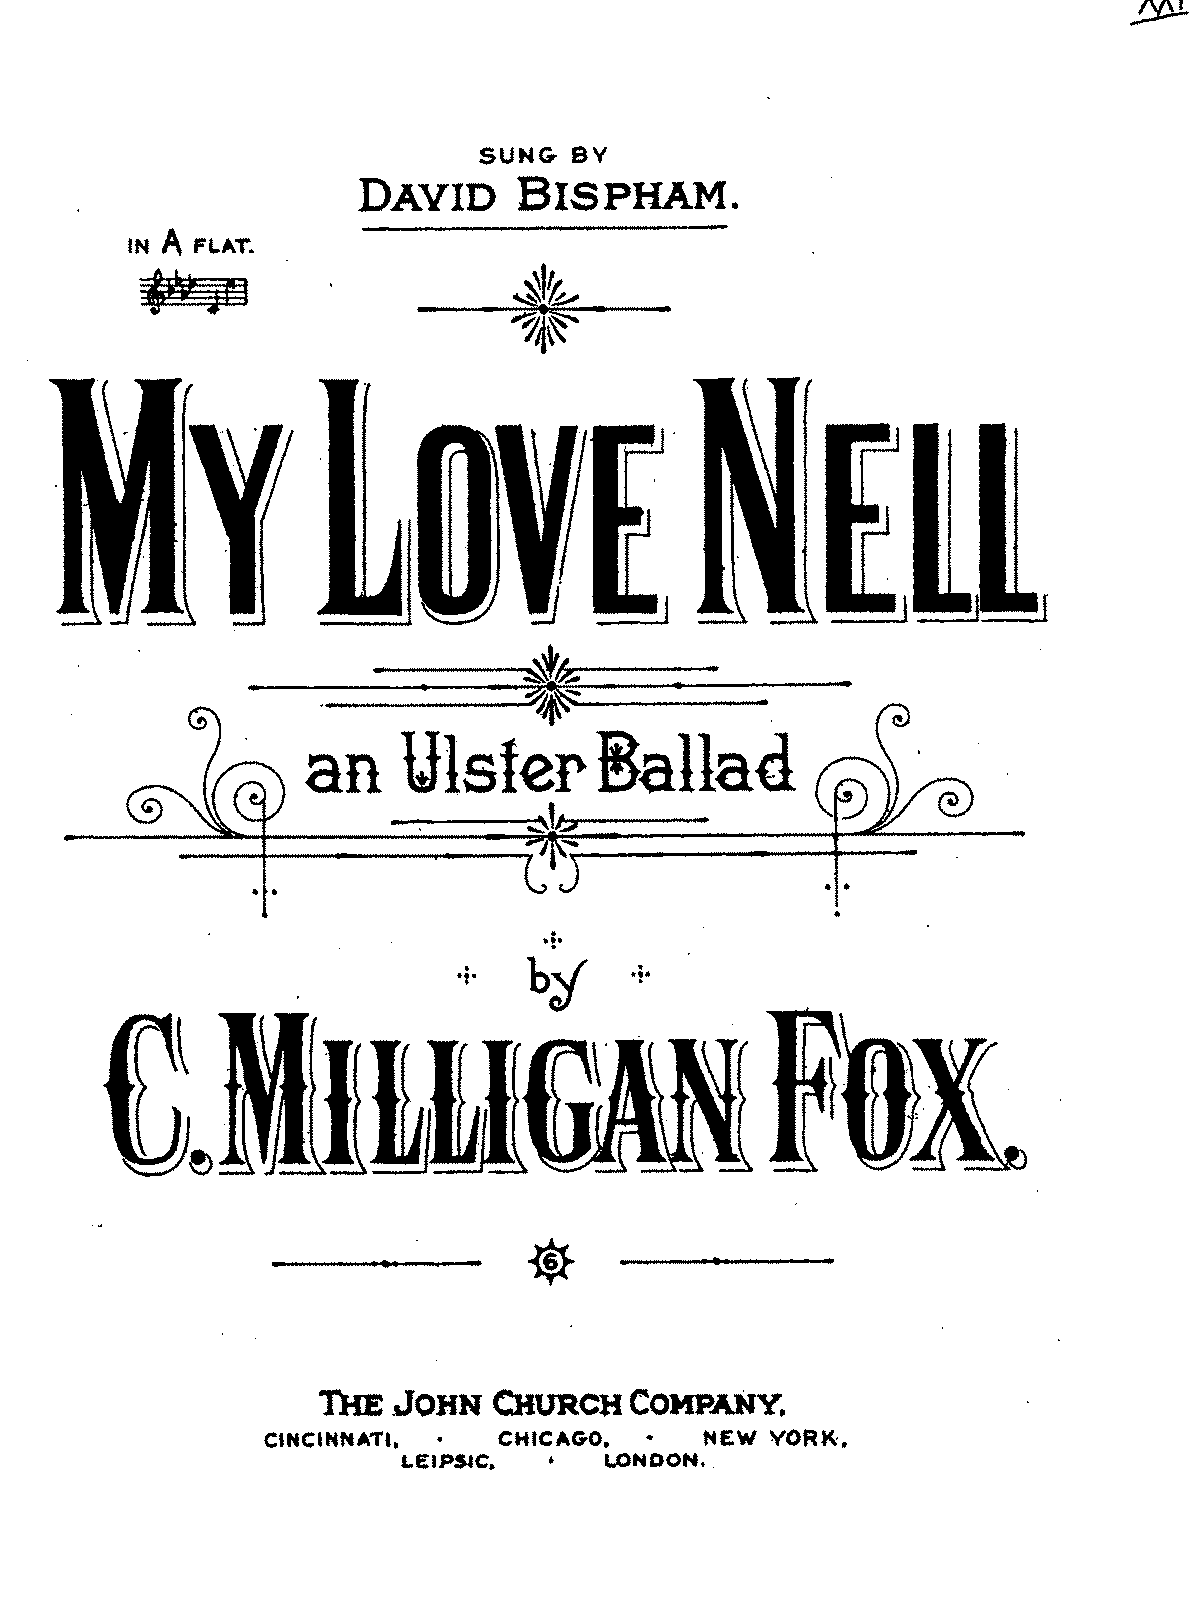 PMLP227627-Fox My Love Nell cropped.pdf